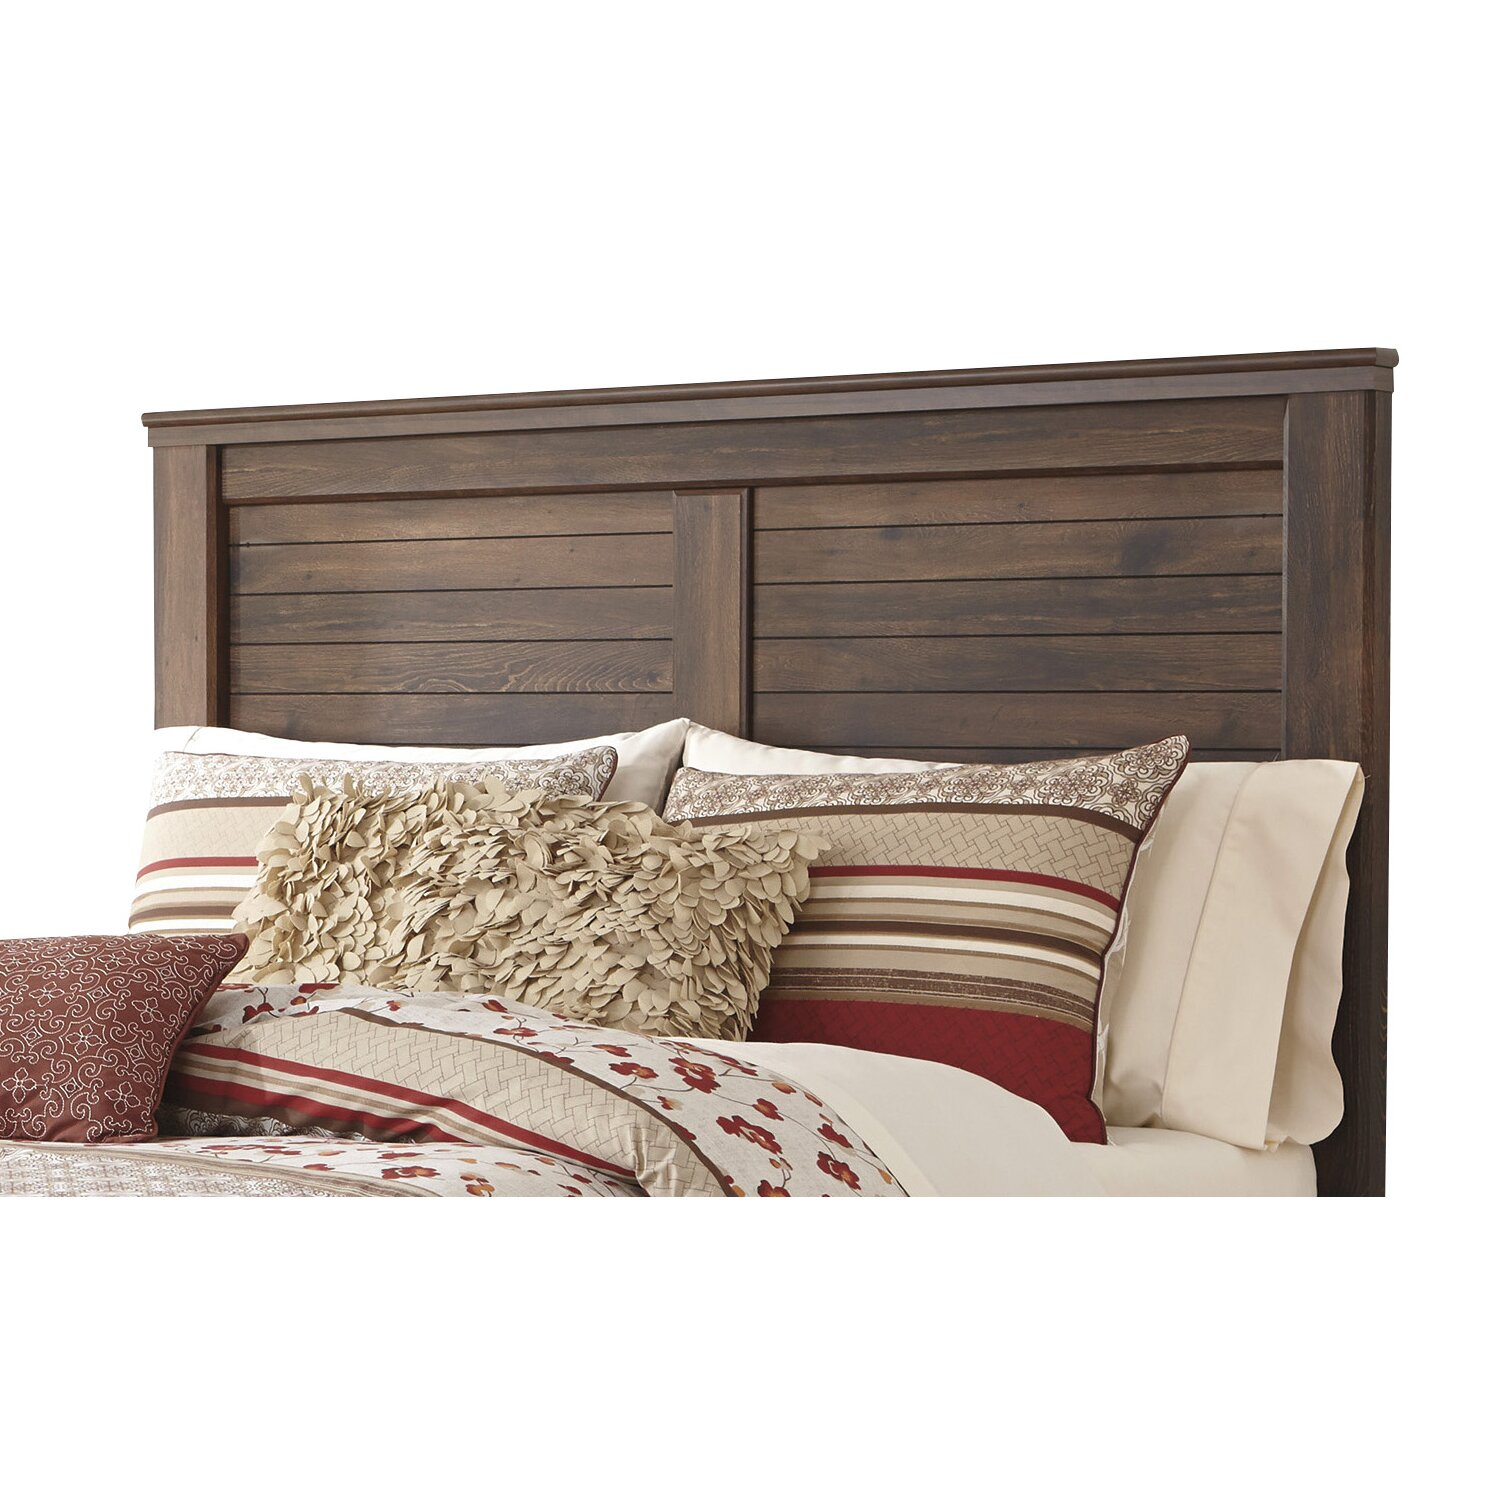 Loon Peak Flattop Wood Headboard & Reviews | Wayfair